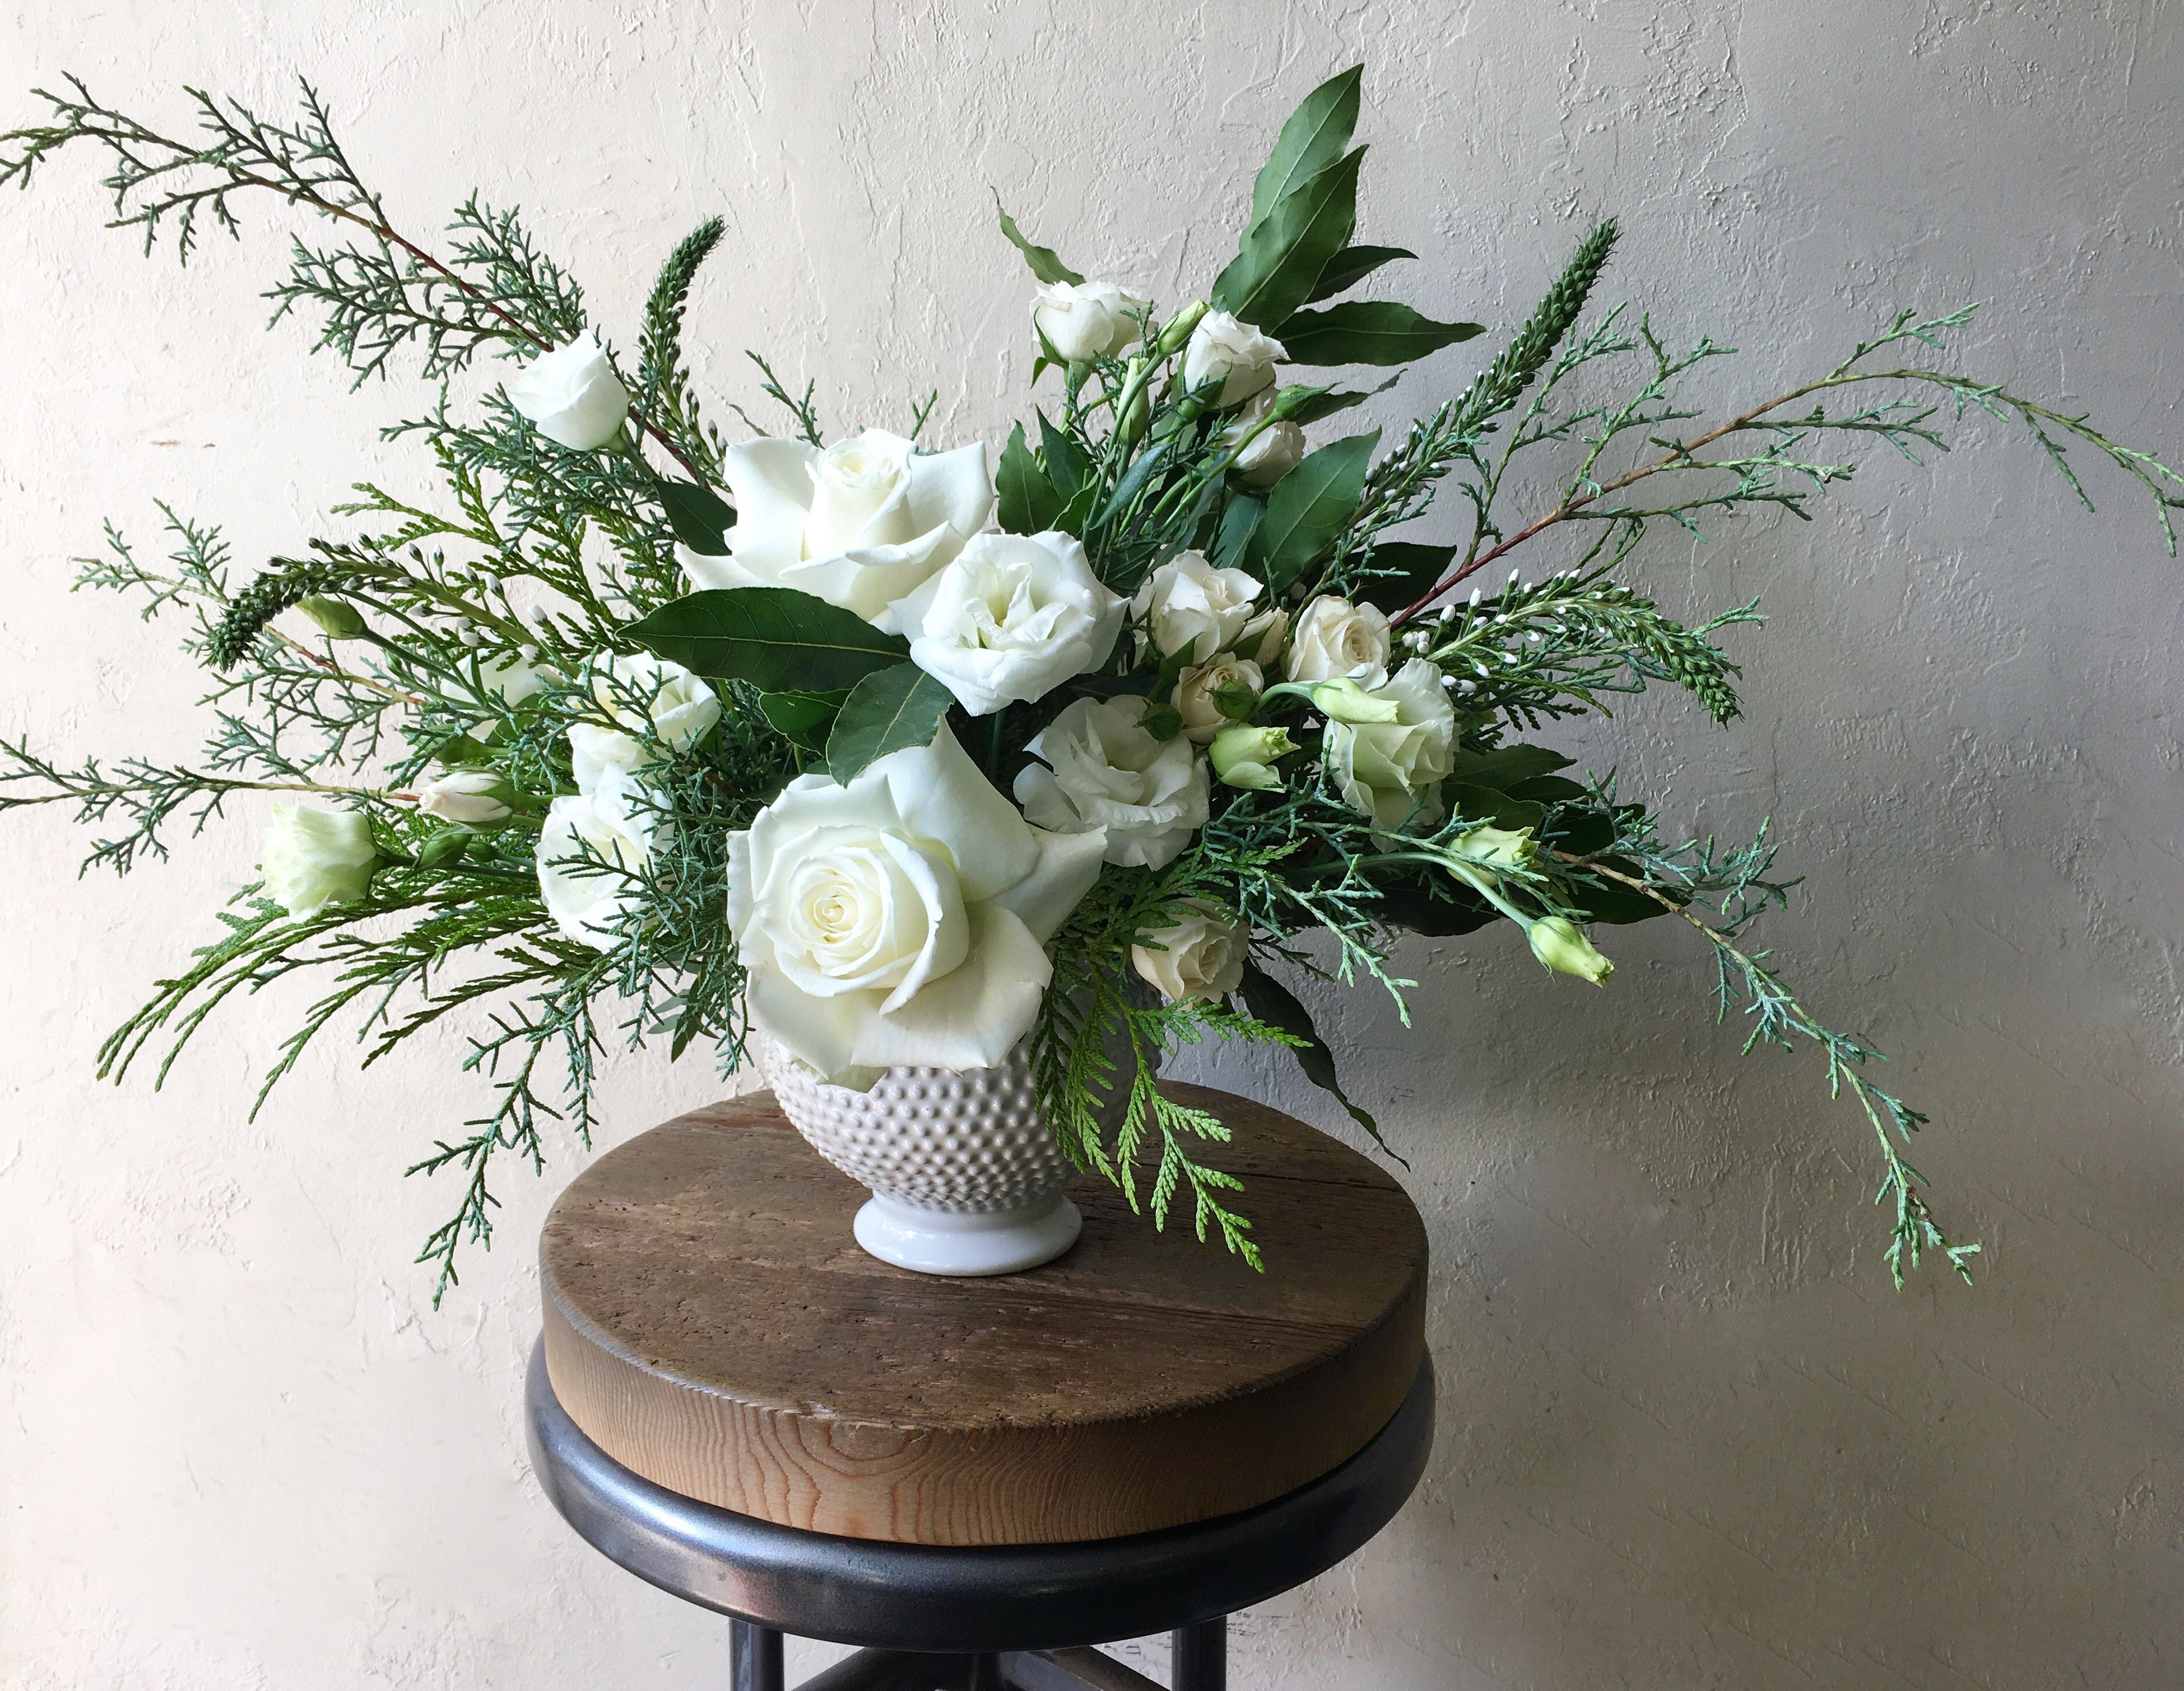 Pin by Rachelle Soucy on Winter at BOTANY Order flowers